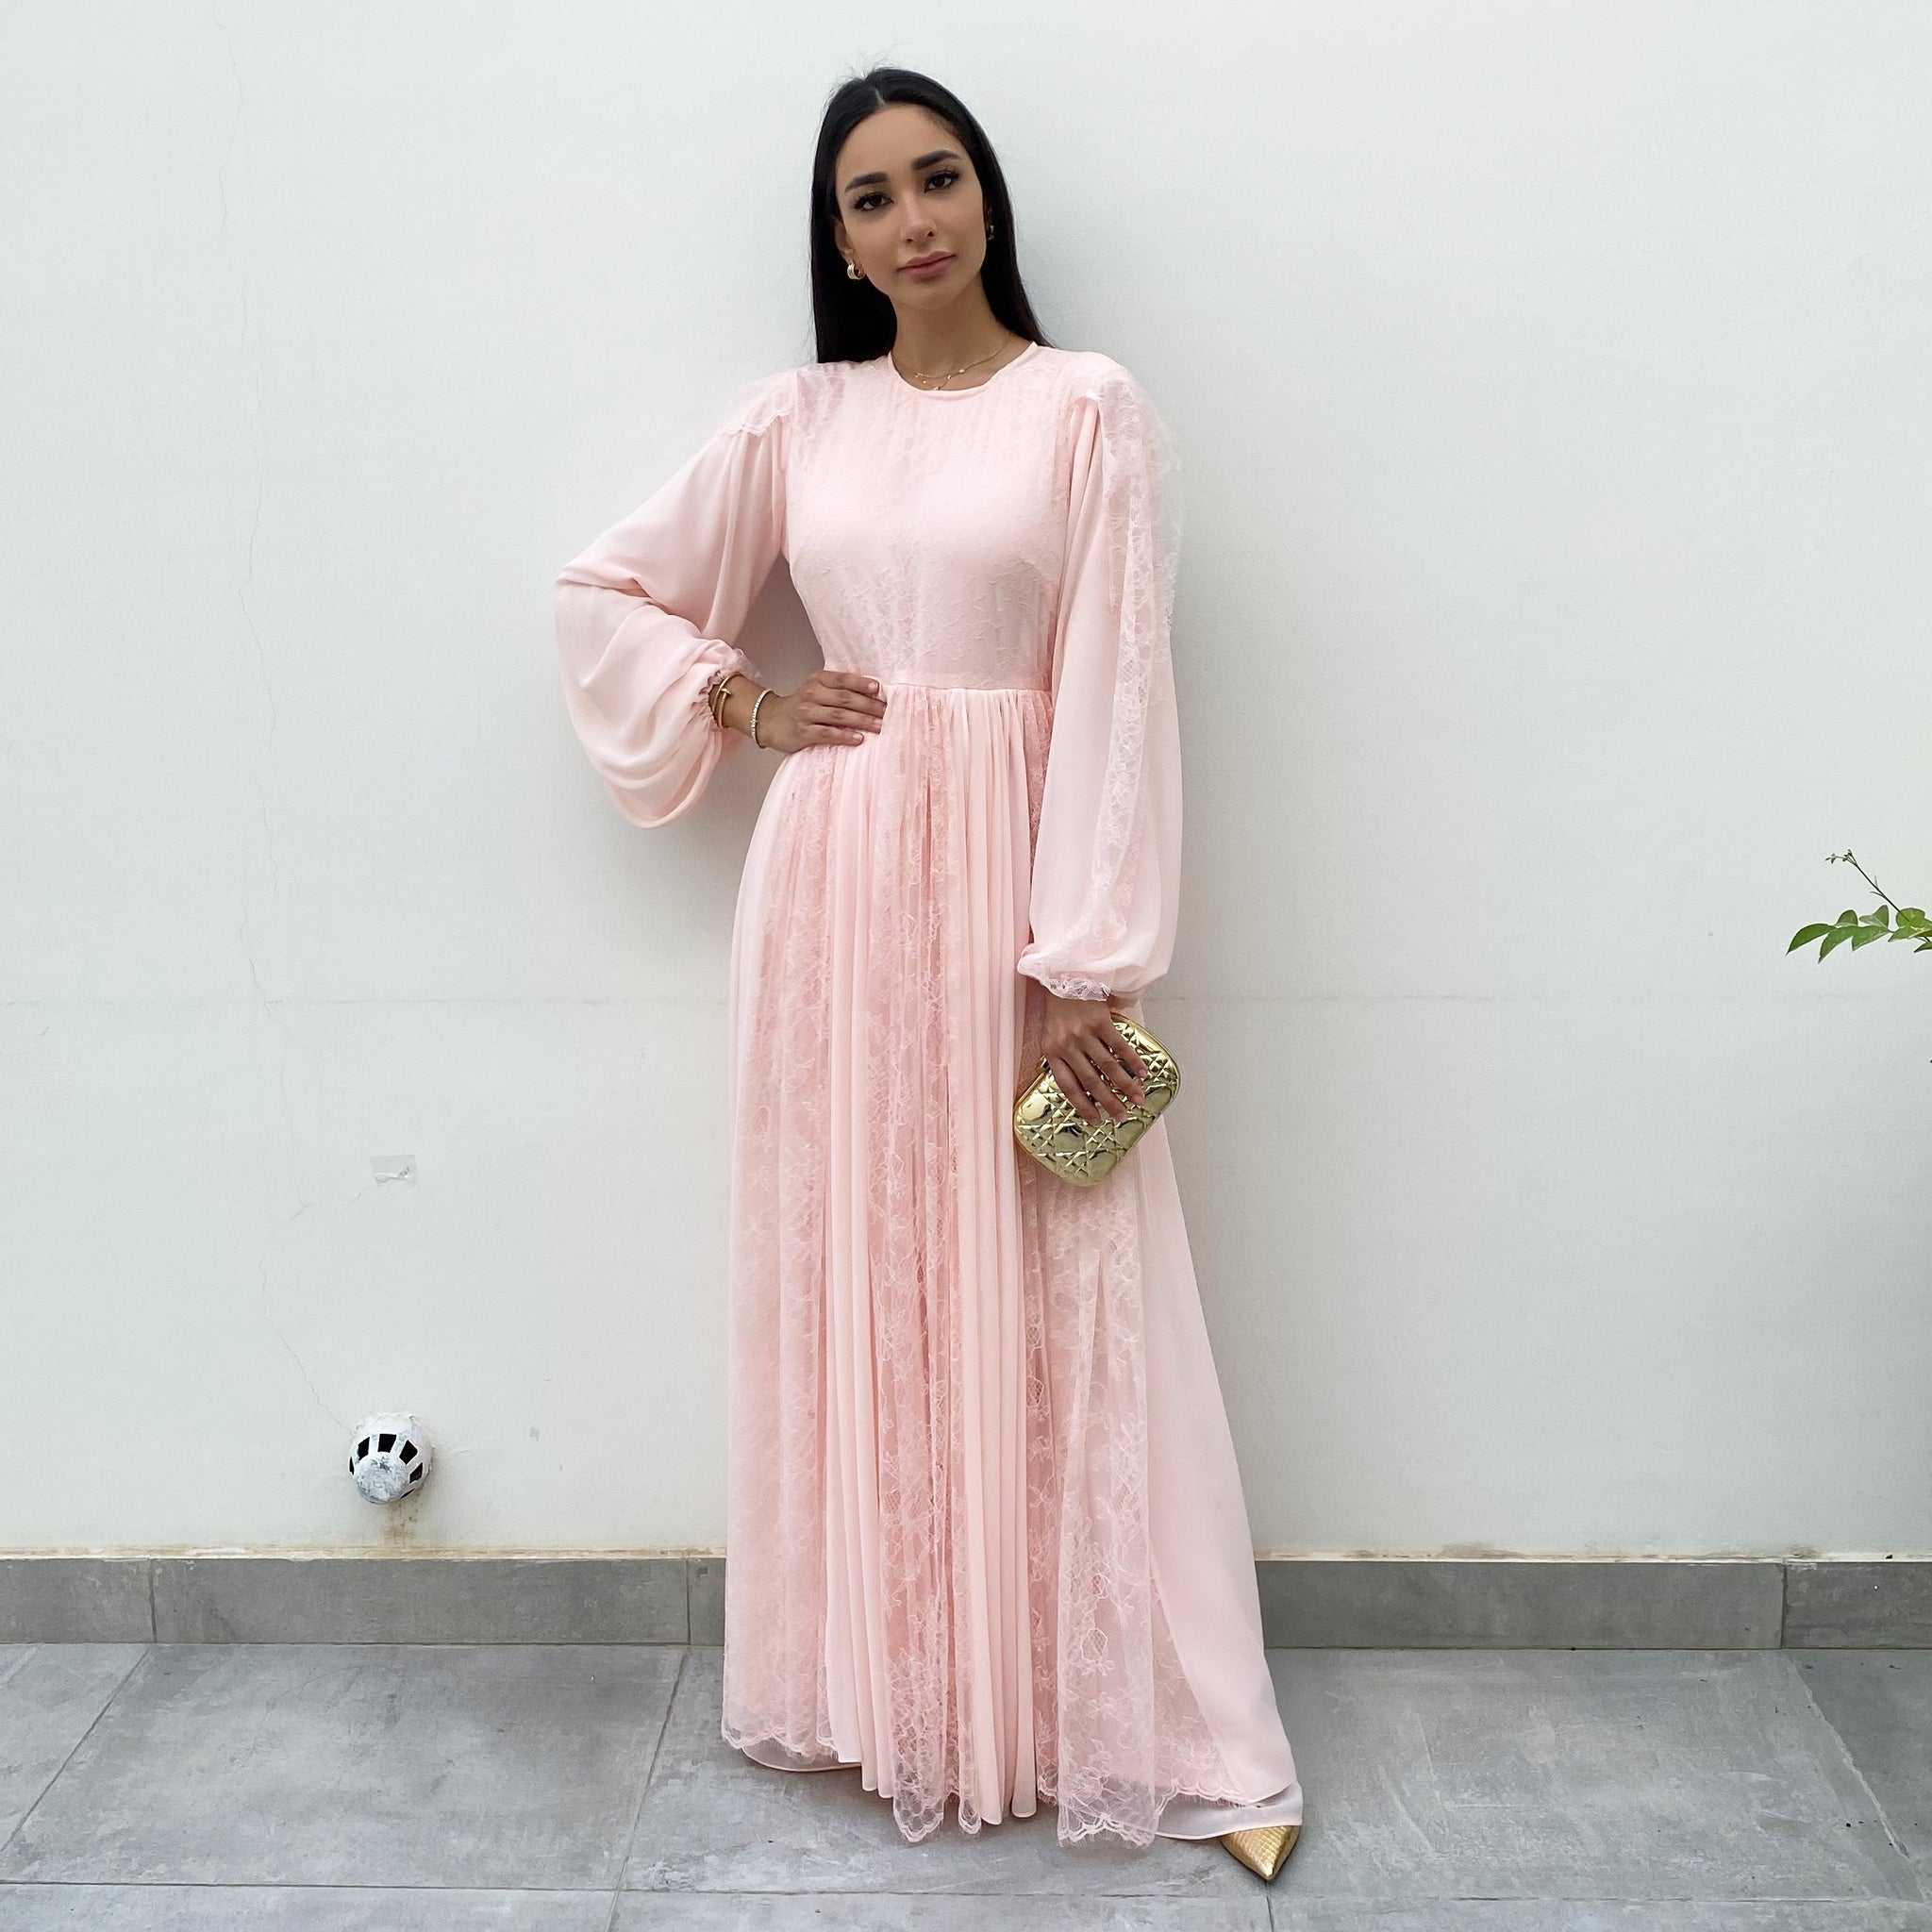 RAM20 ROSE GEORGETTE & CHANTILLY LACE MAXI DRESS